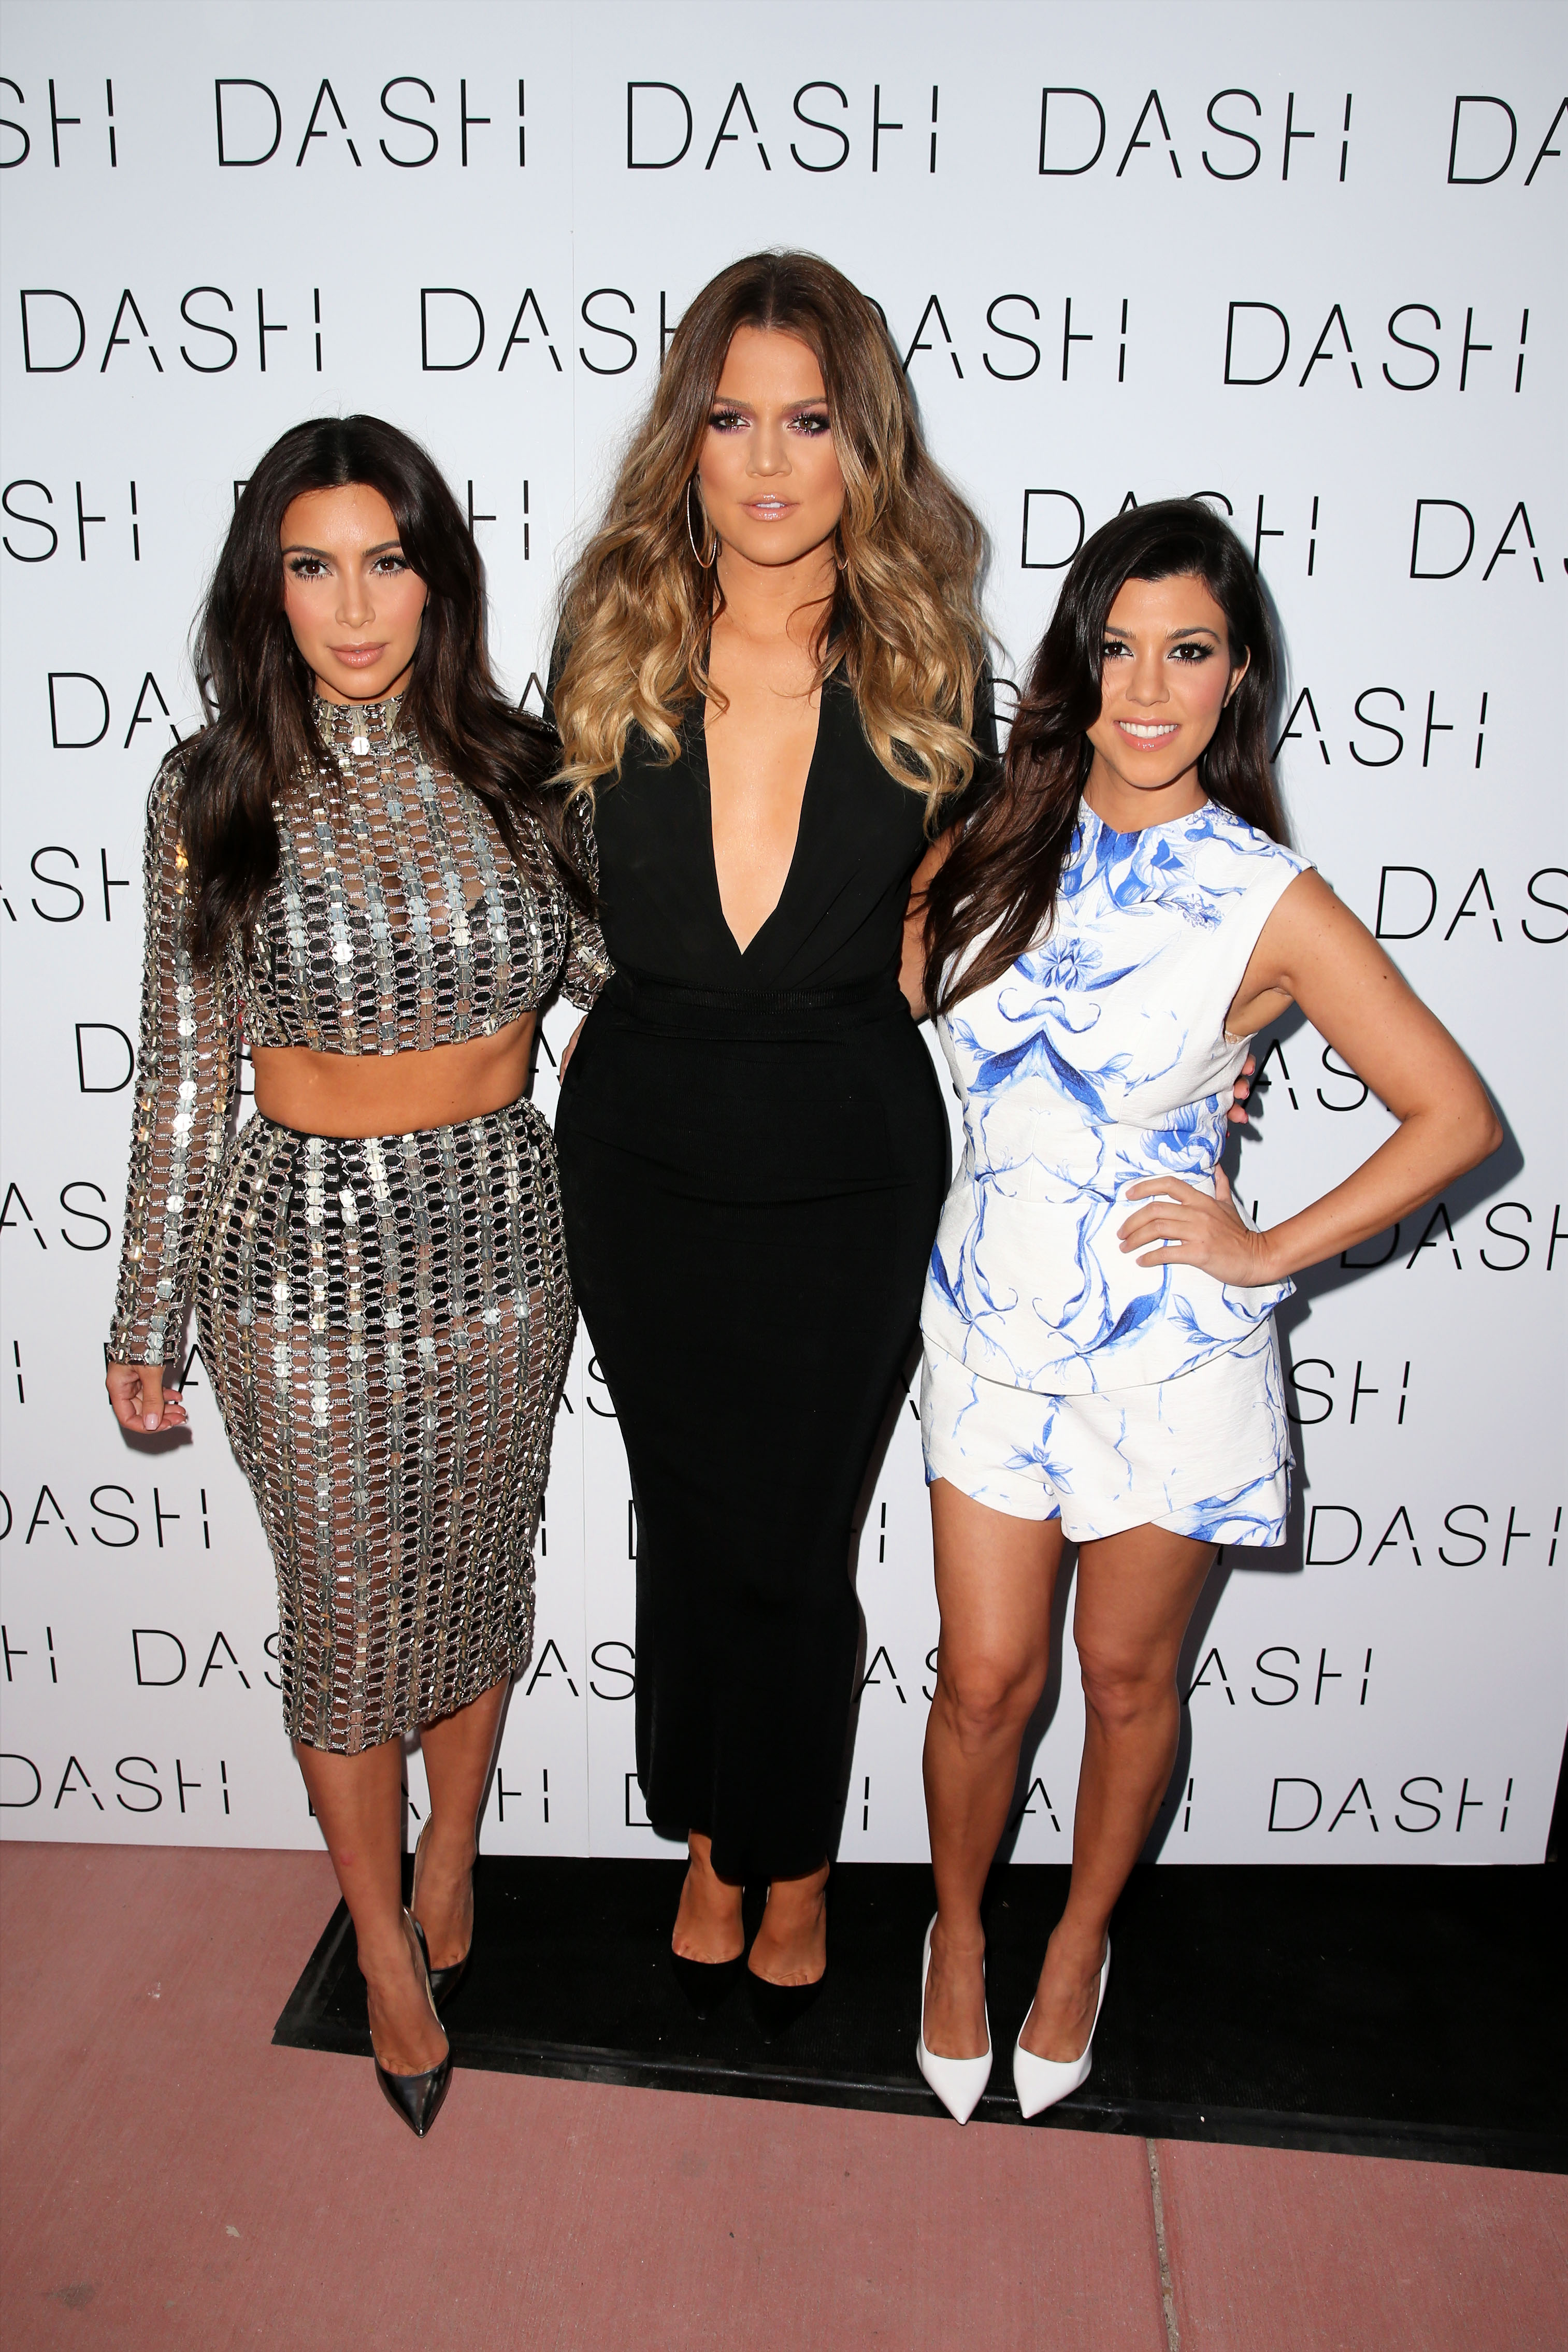 TV personality Kim Kardashian, wearing a silver sequined dress, arrives at the Grand Opening of the DASH store in Miami Beach, Florida